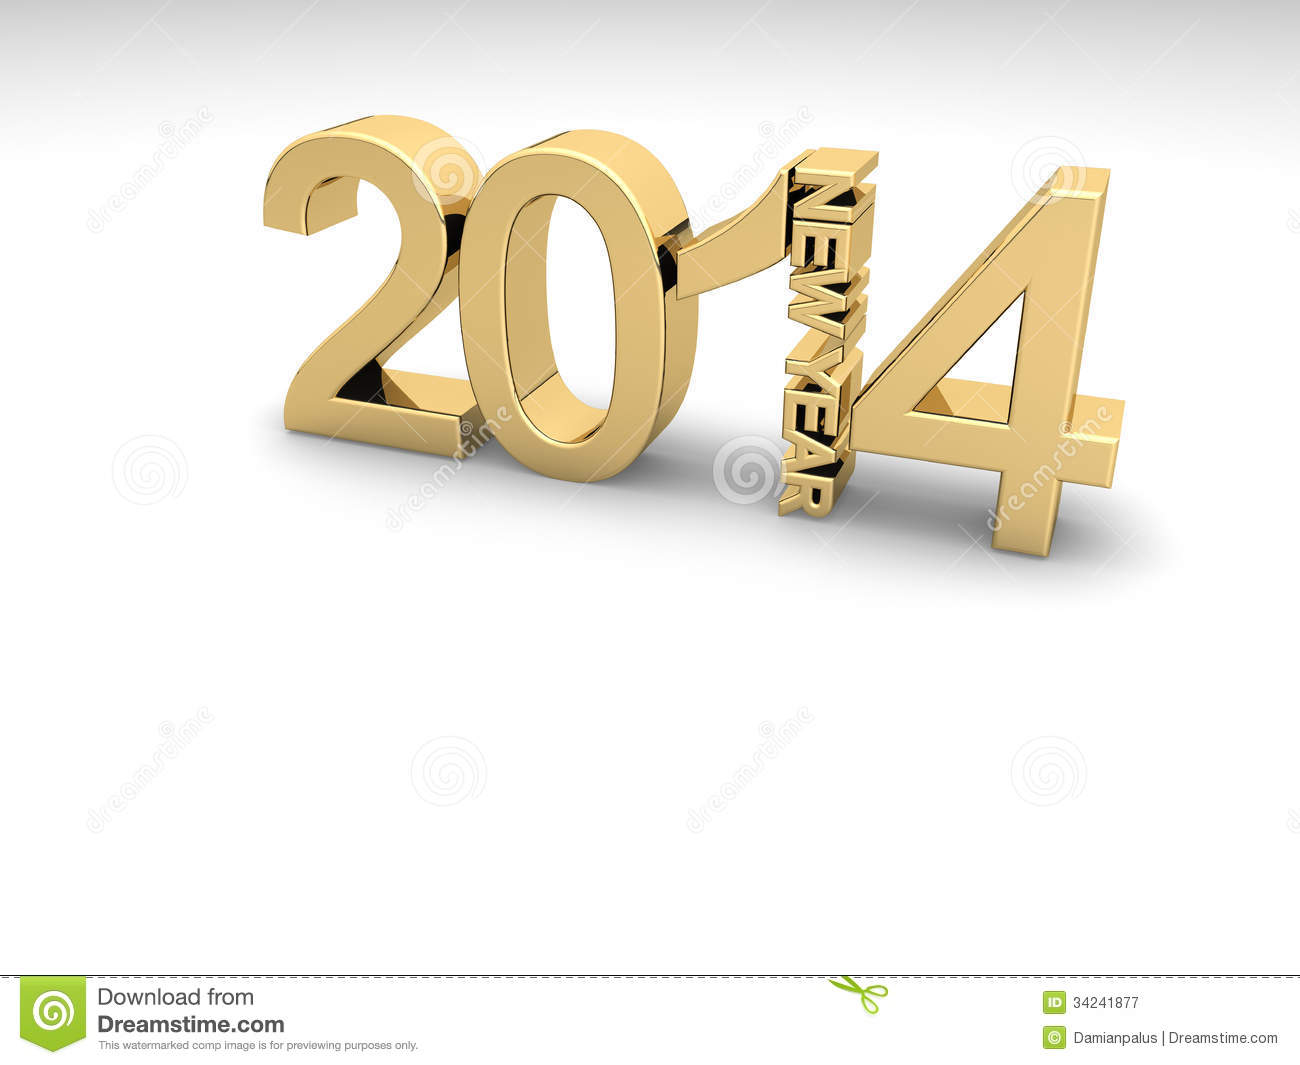 Happy new year 2014 Illustrations and Stock Art 6243